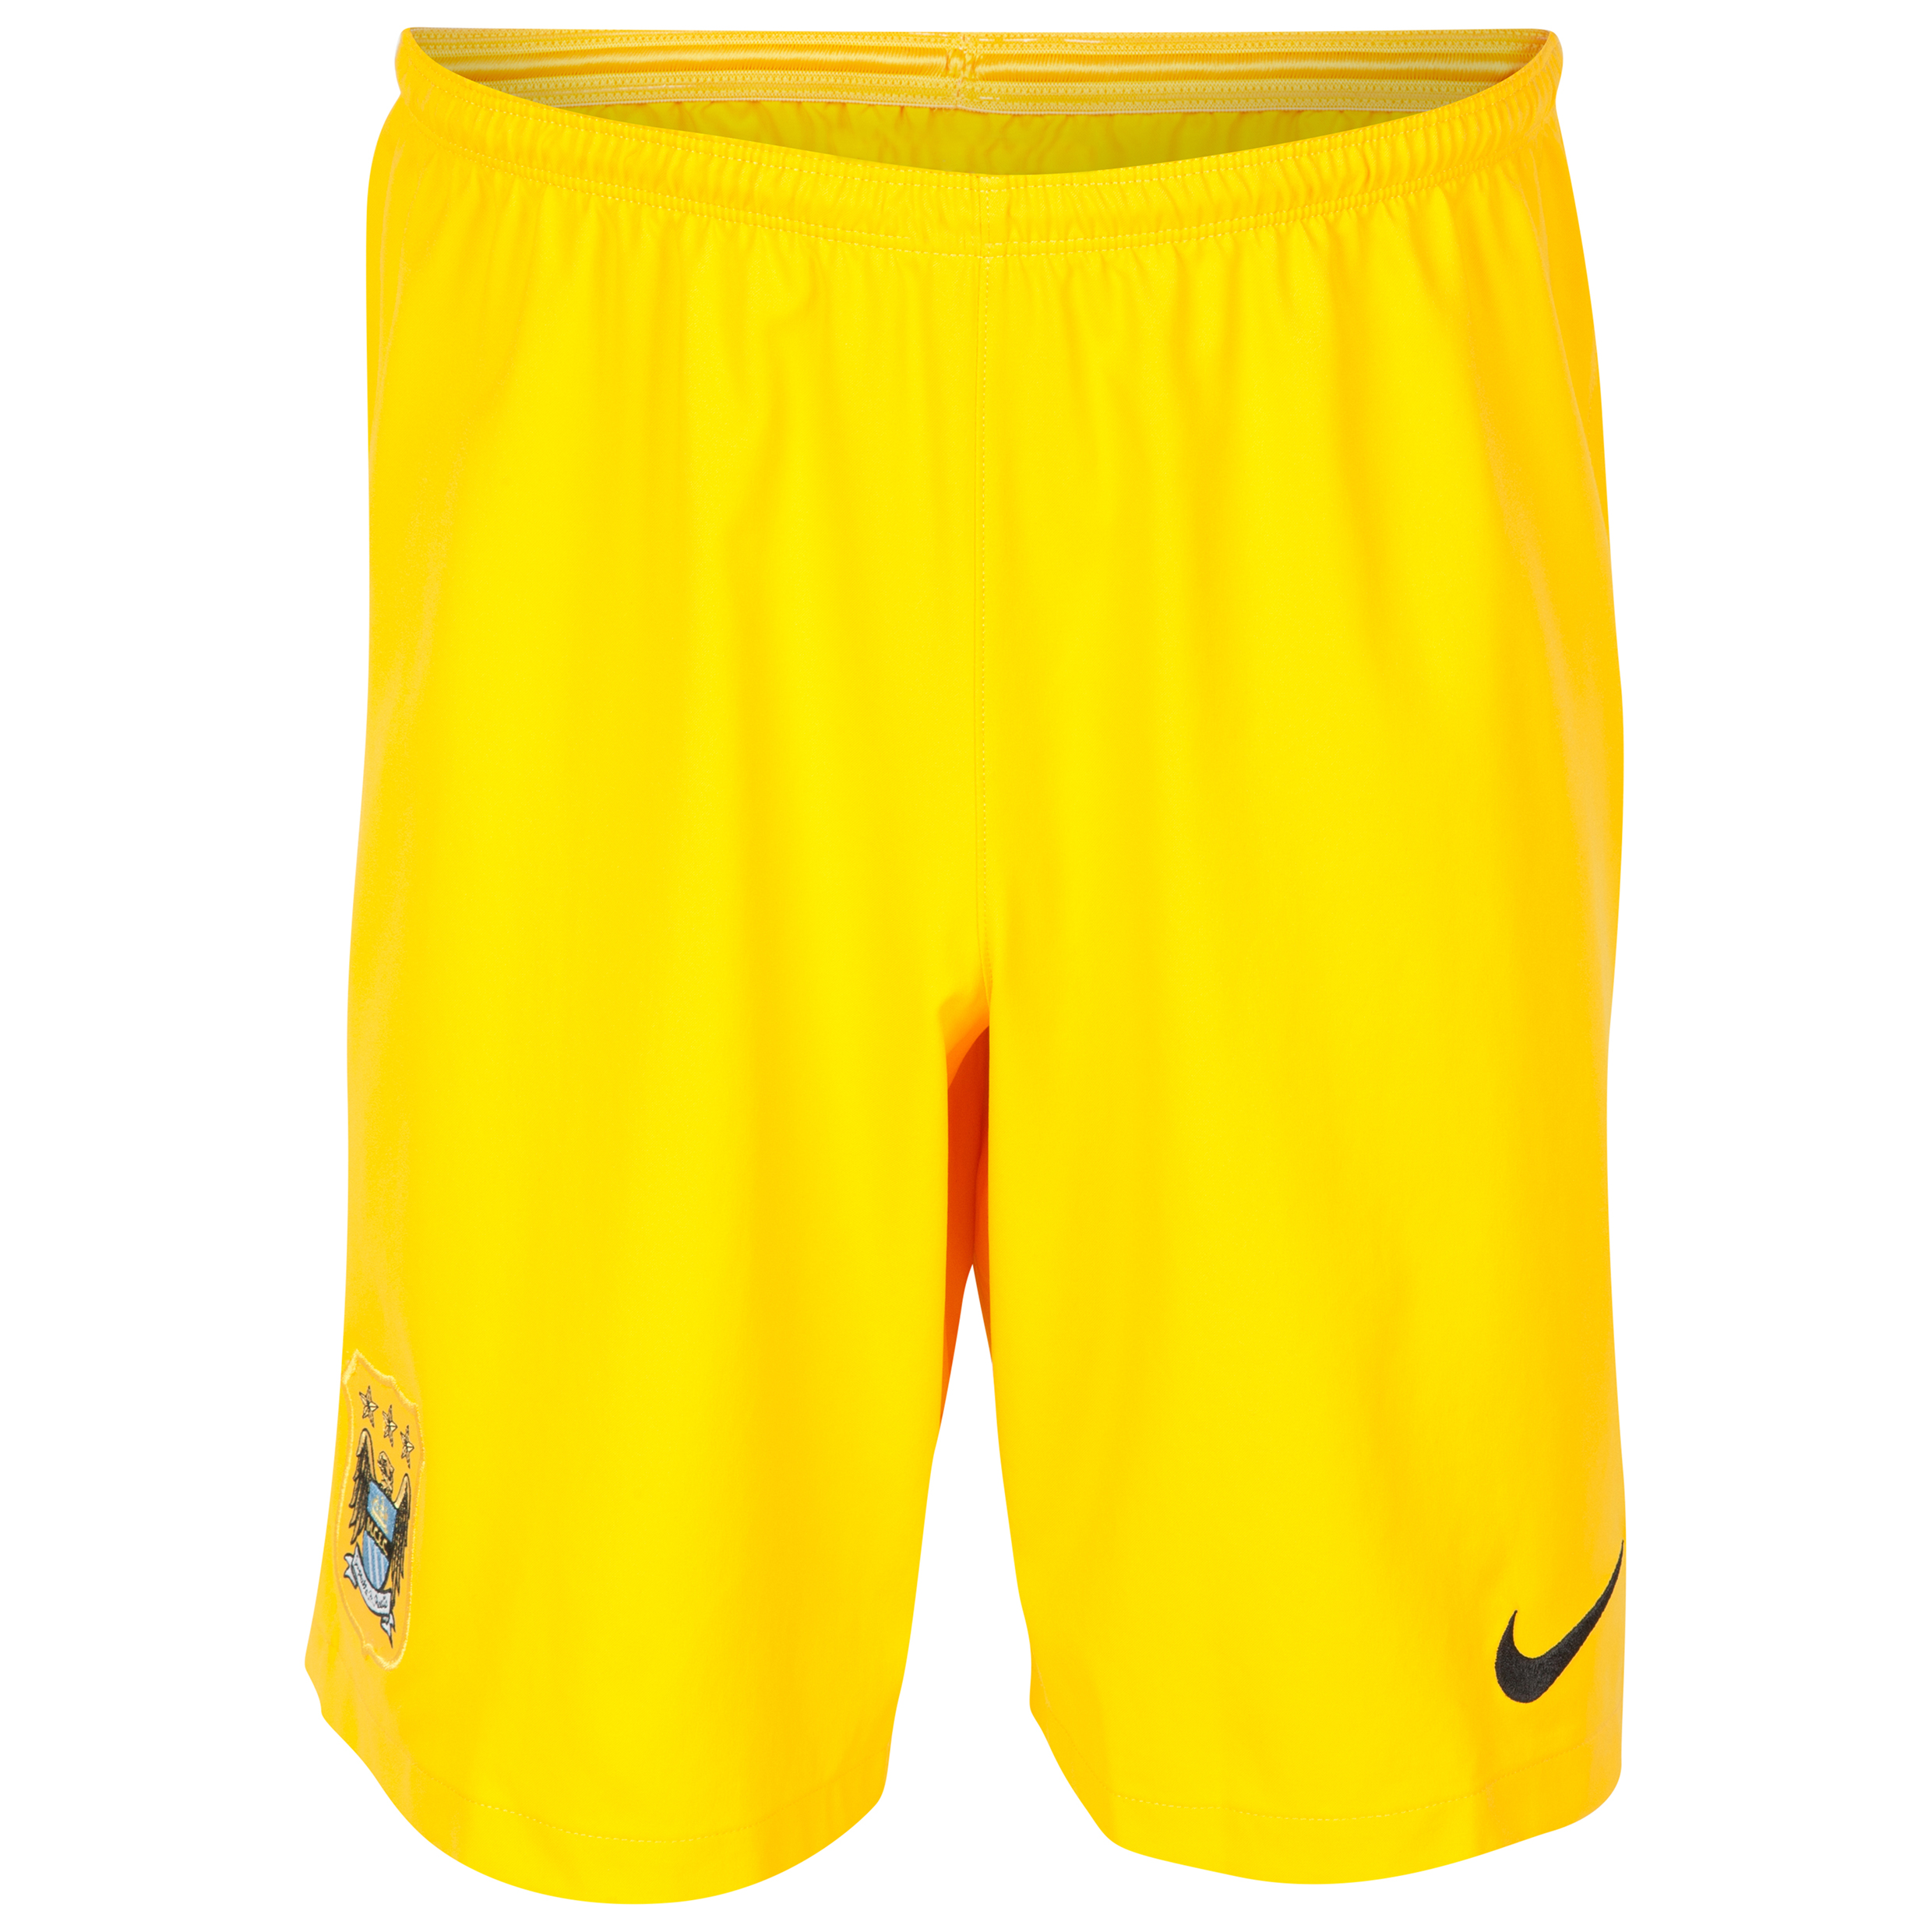 Manchester City Change Goalkeeper Shorts 2014/15 Gold